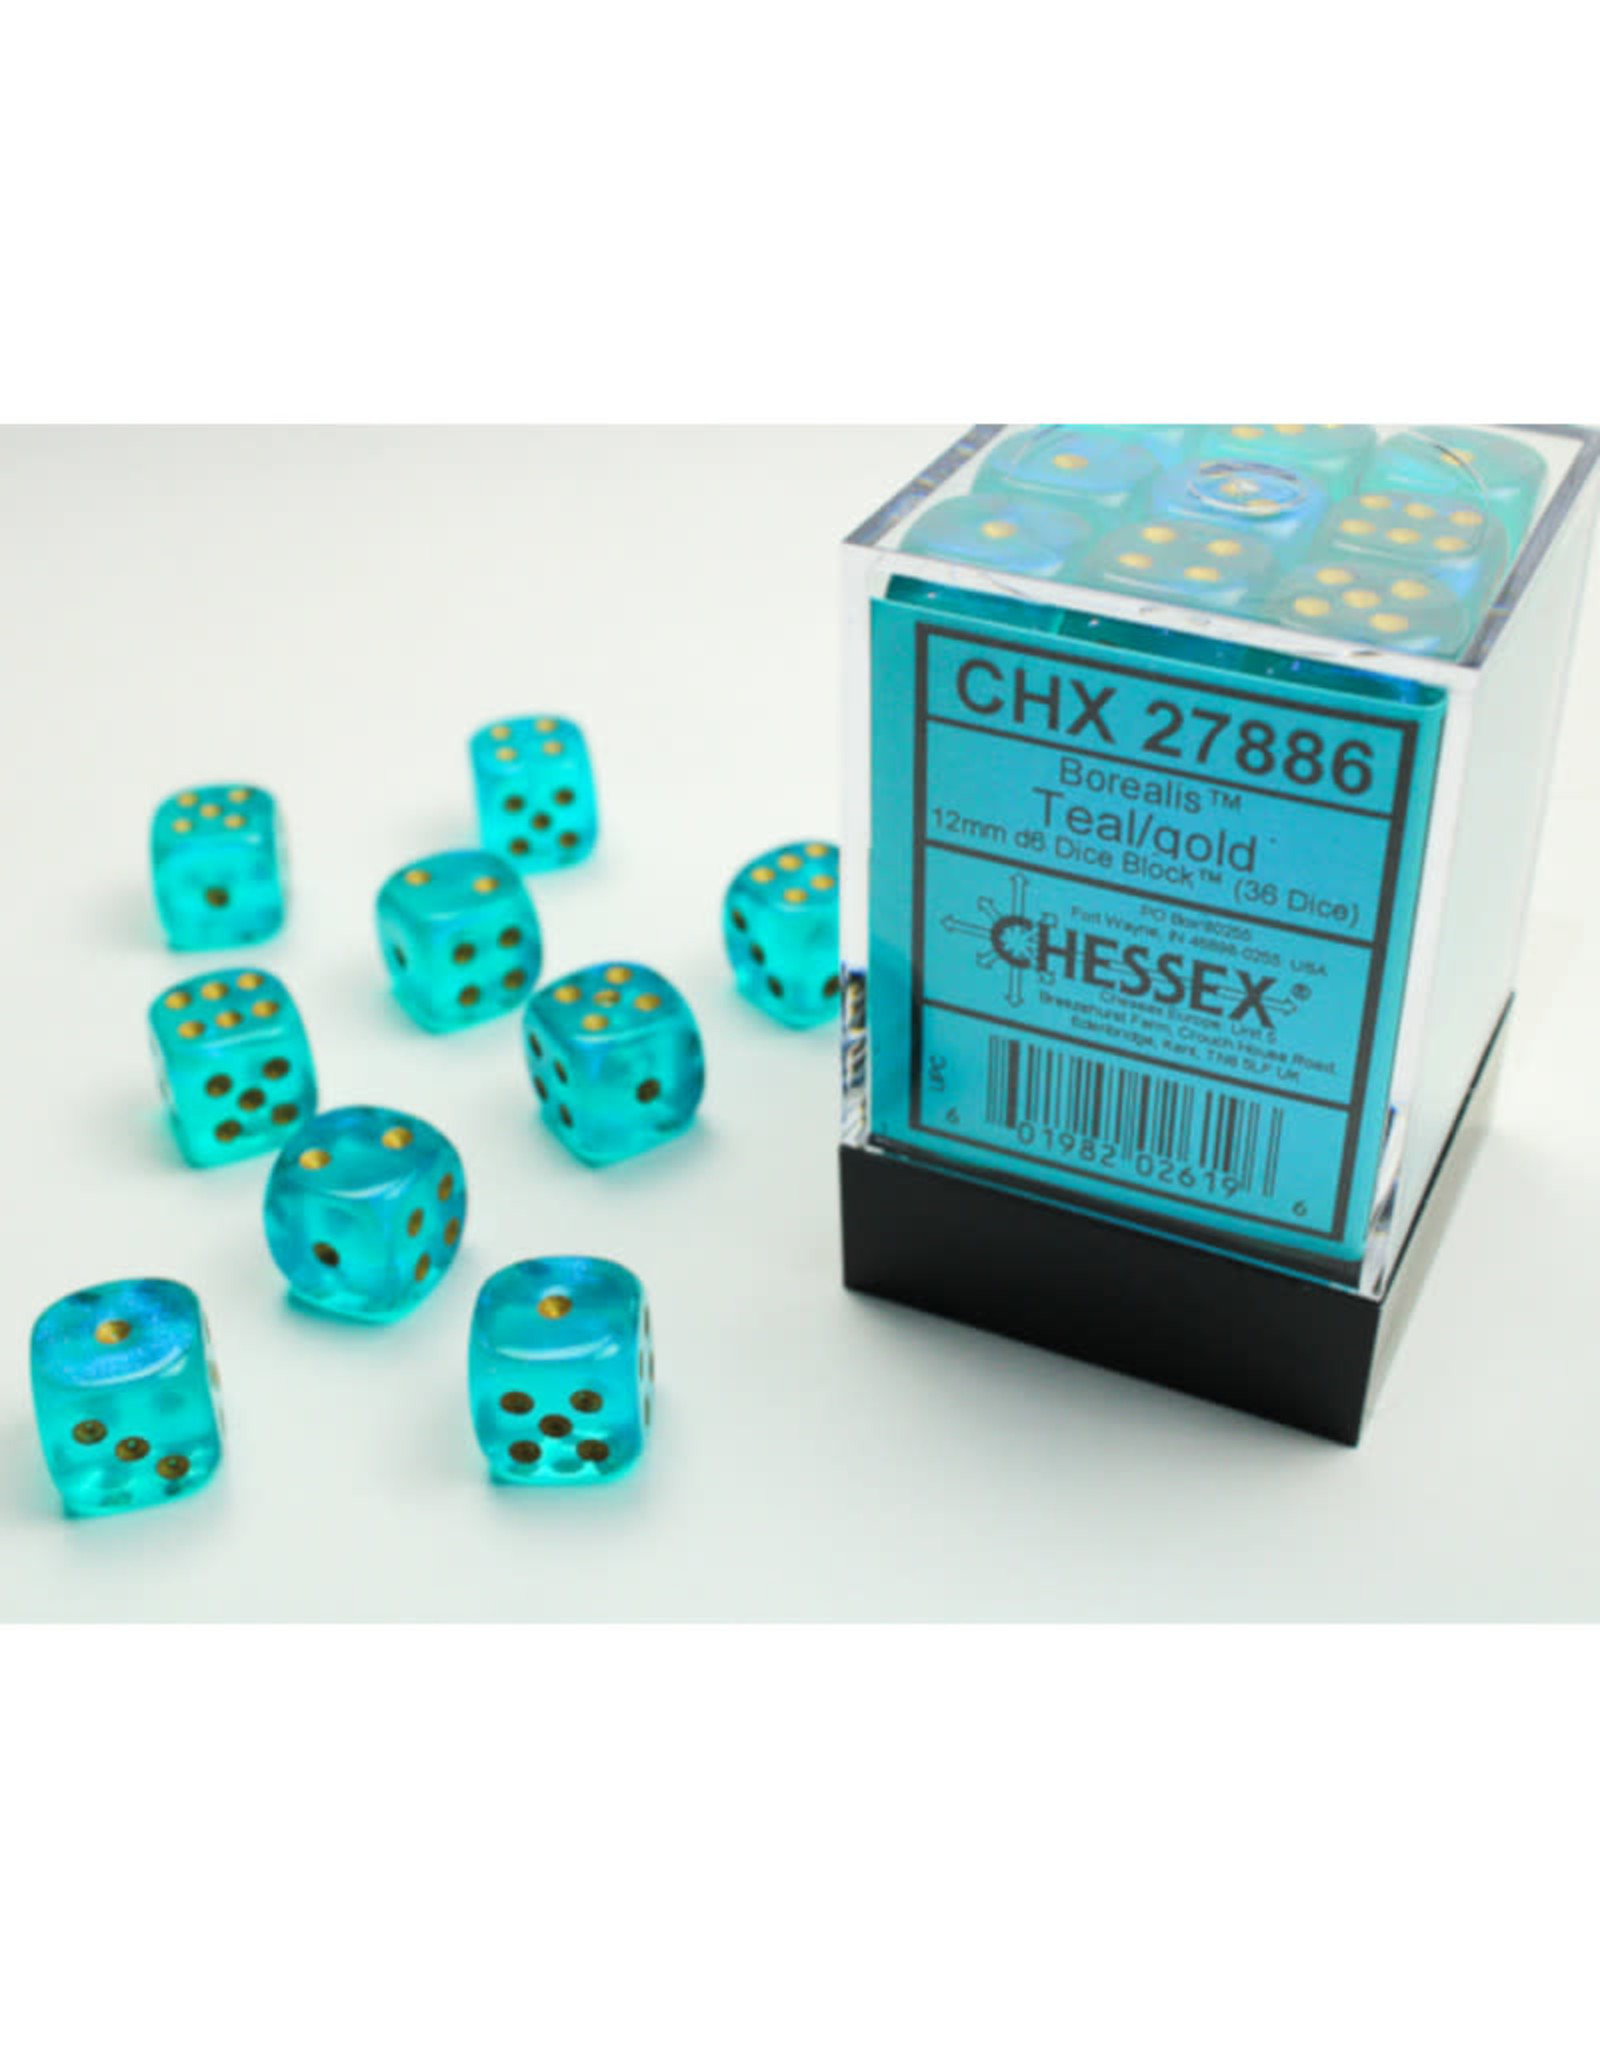 Chessex D6 Dice: 12mm Borealis Teal/Gold (36)